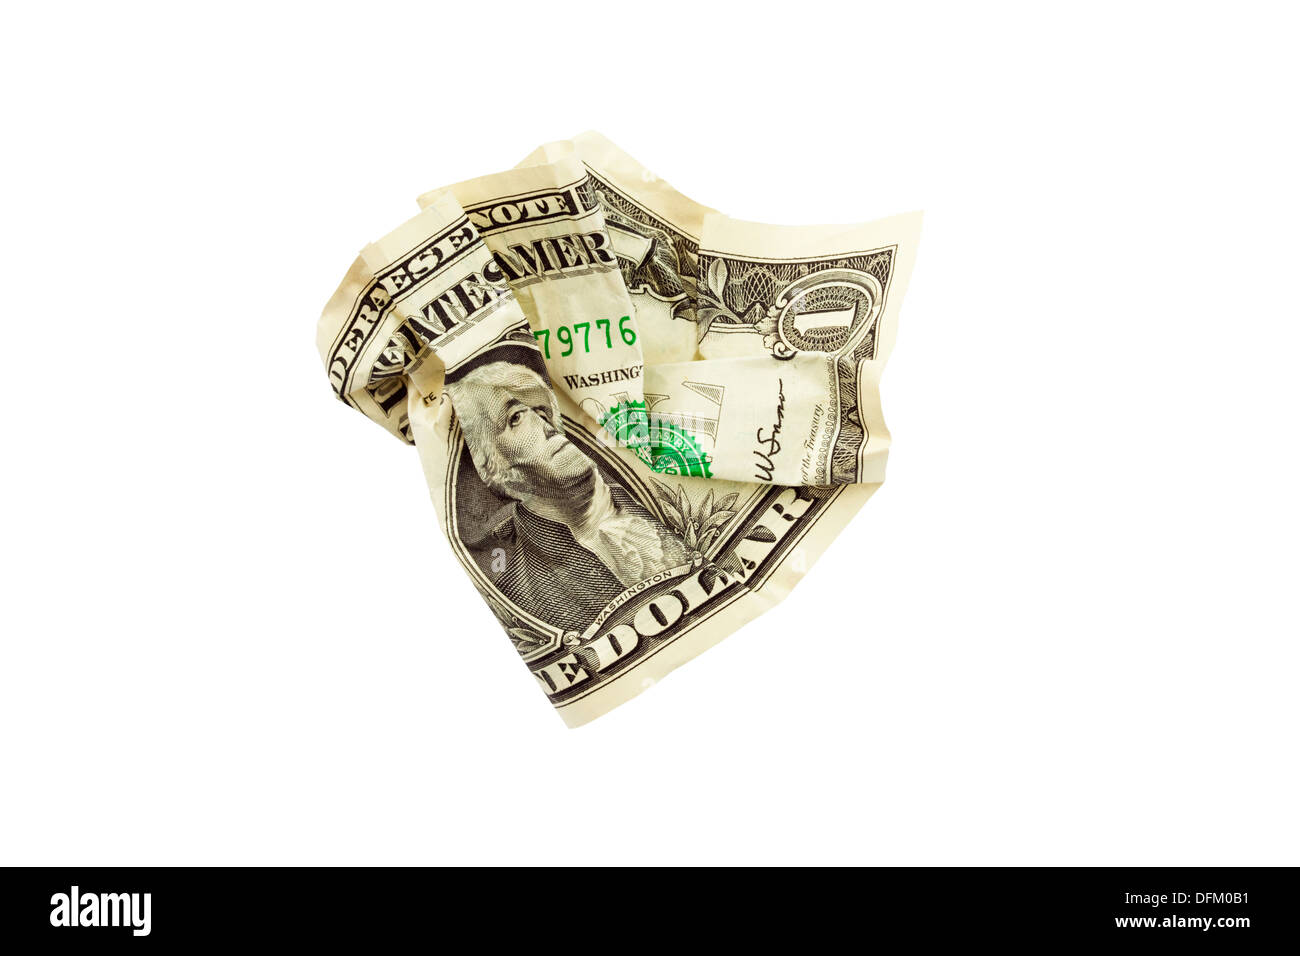 One US dollar bill screwed up isolated on a white background to illustrate wasting money concept - Stock Image